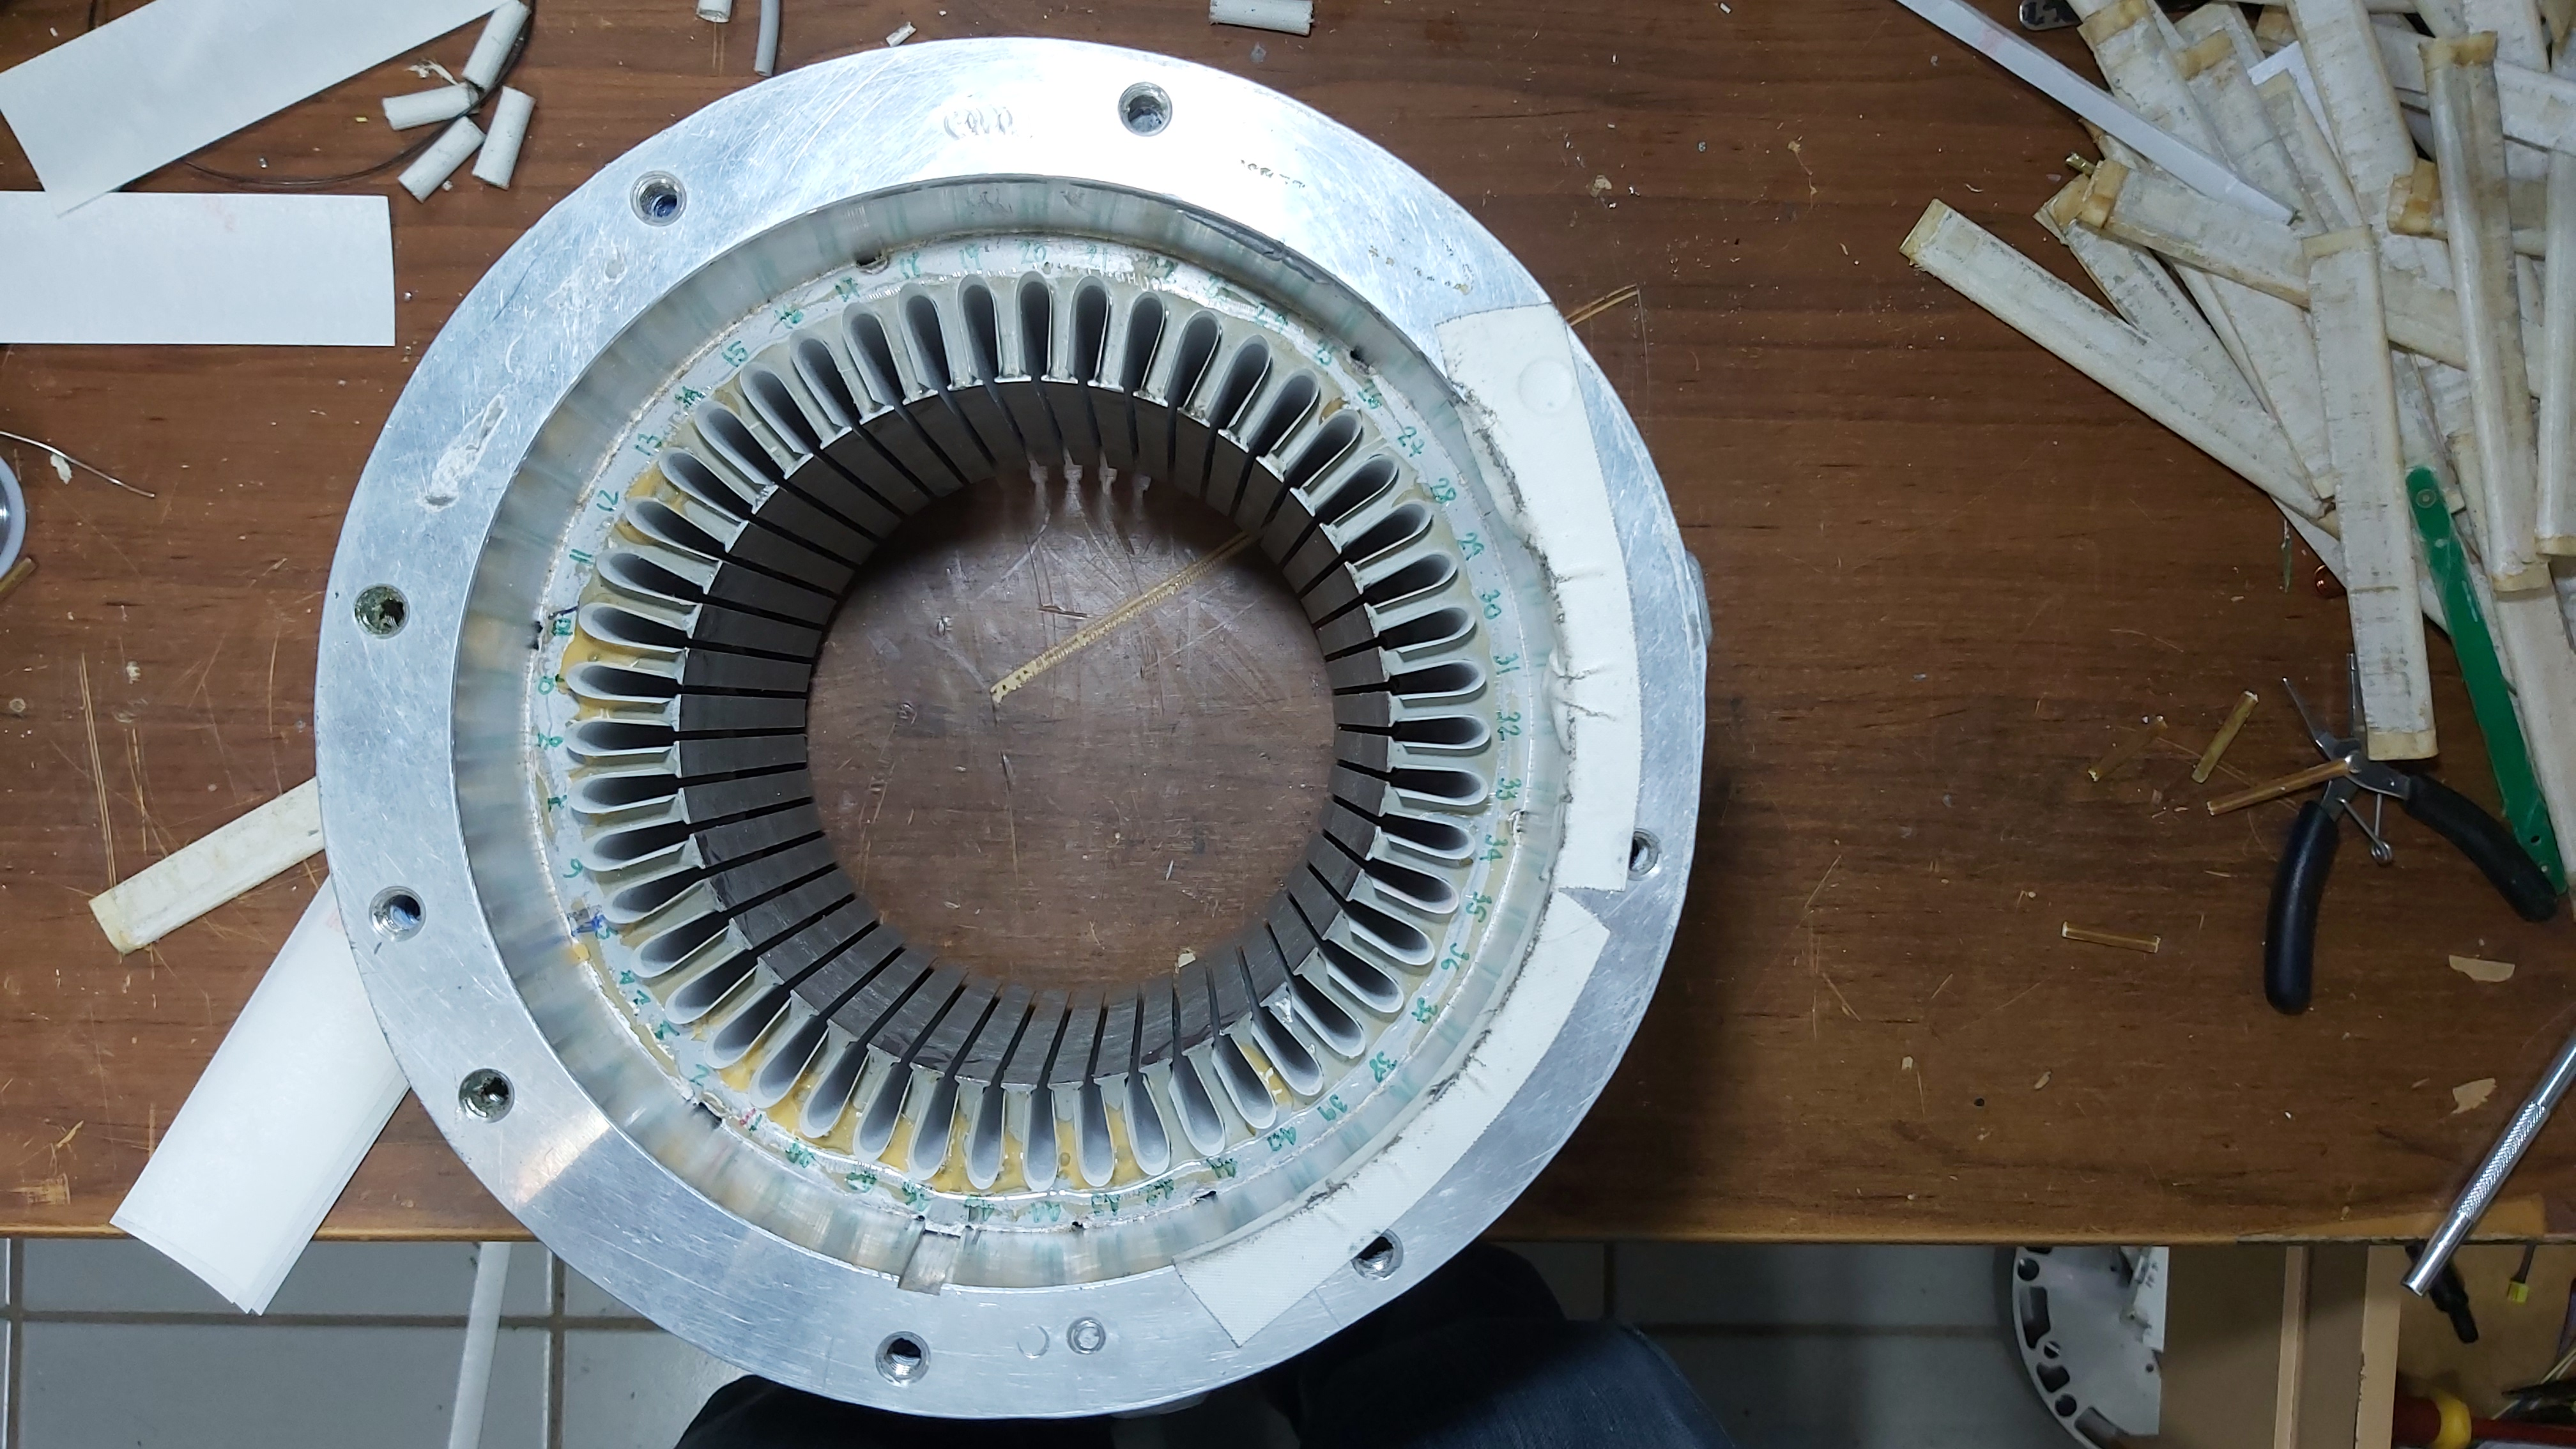 Here is the empty stator again.